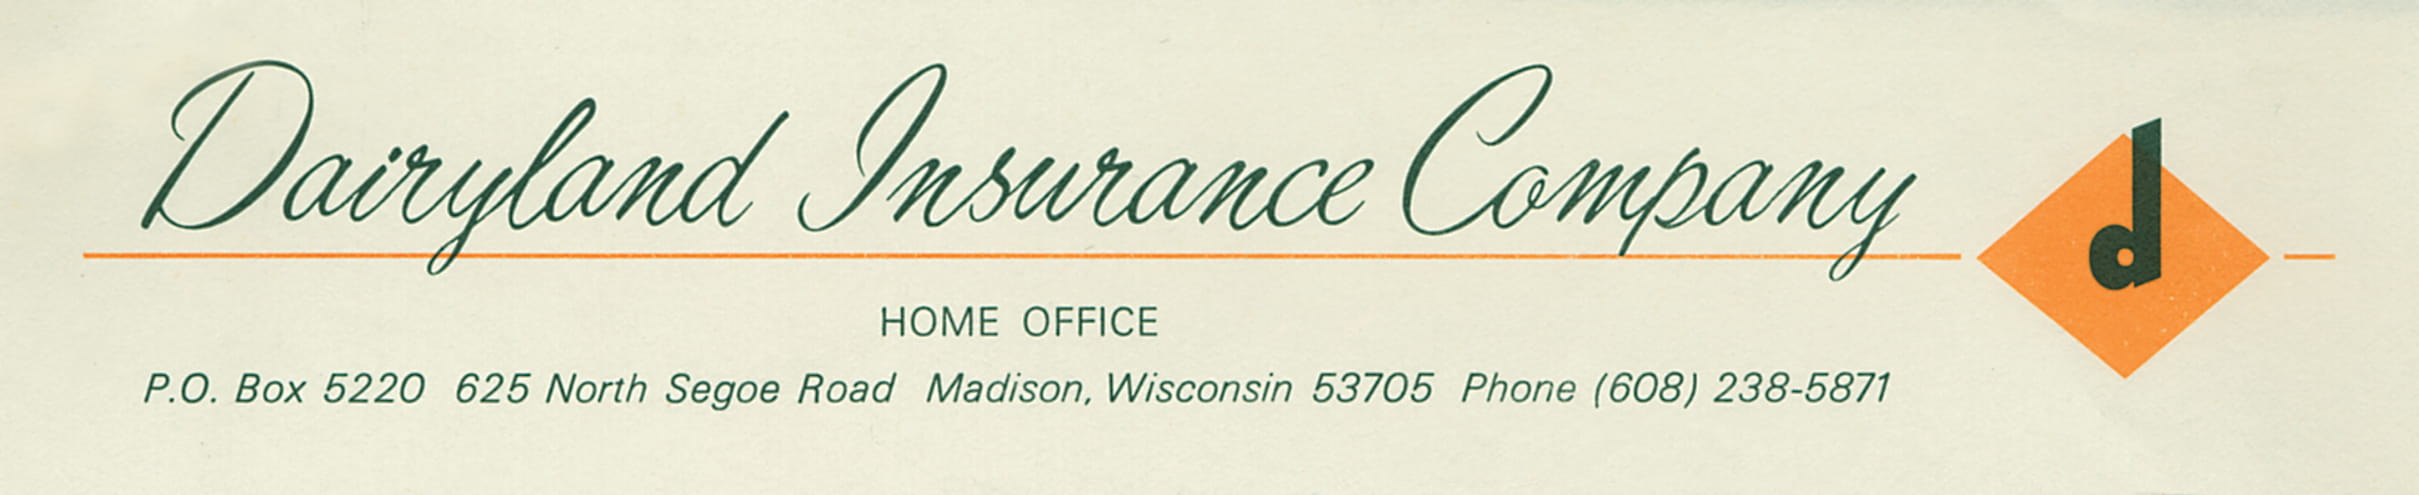 Dairyland Insurance Company Logo